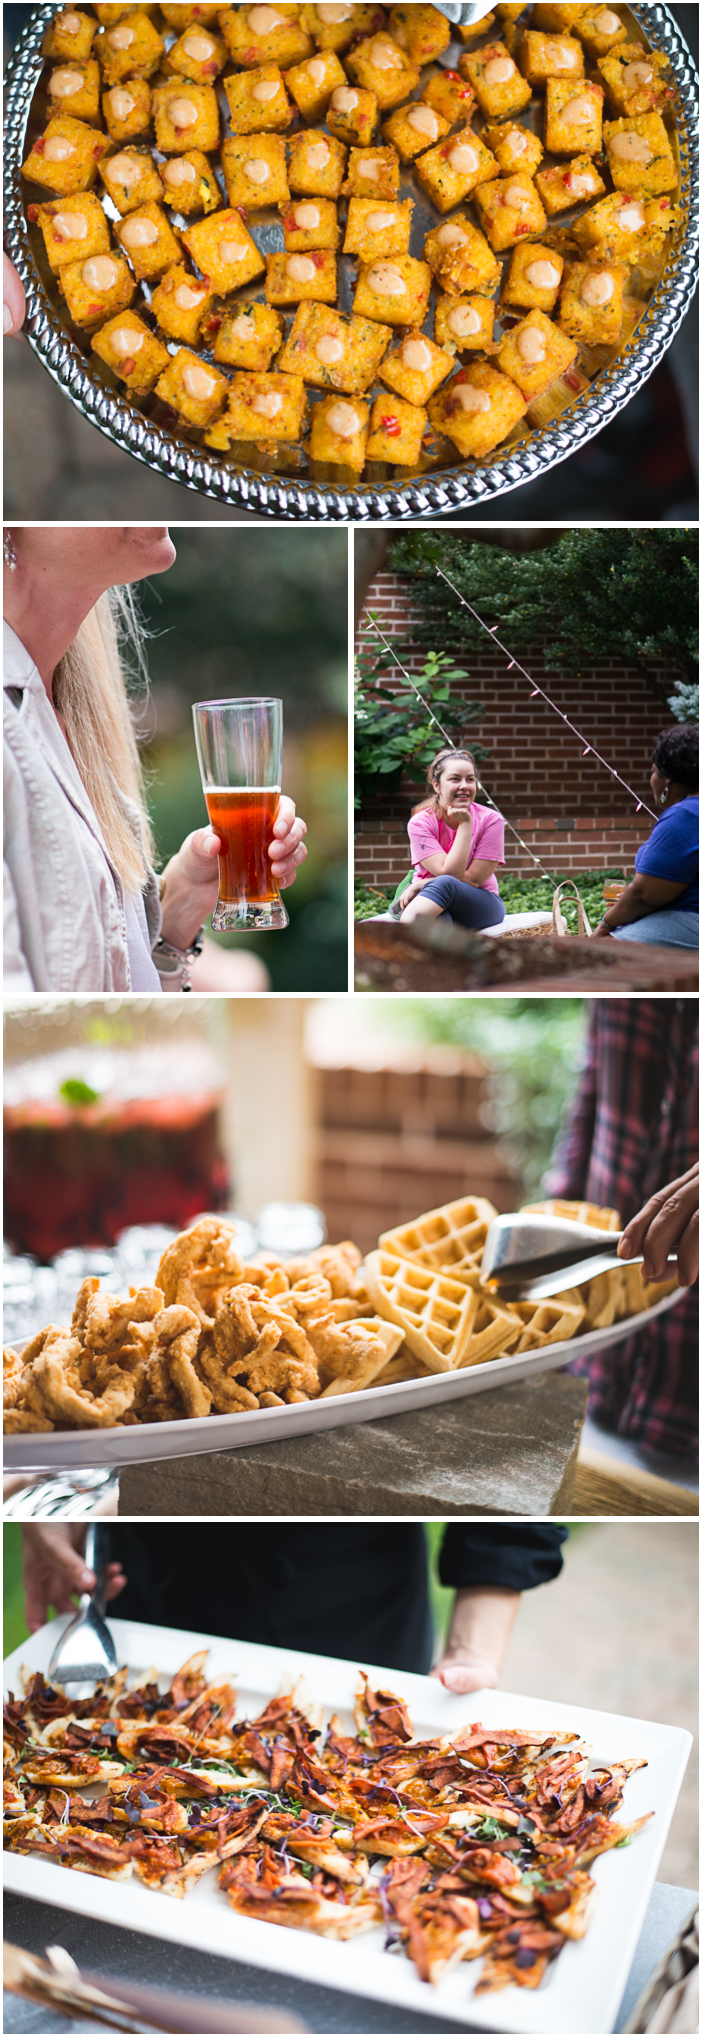 Asheville North Carolina Food & Culture with Food Blog Forum and @whiteonrice